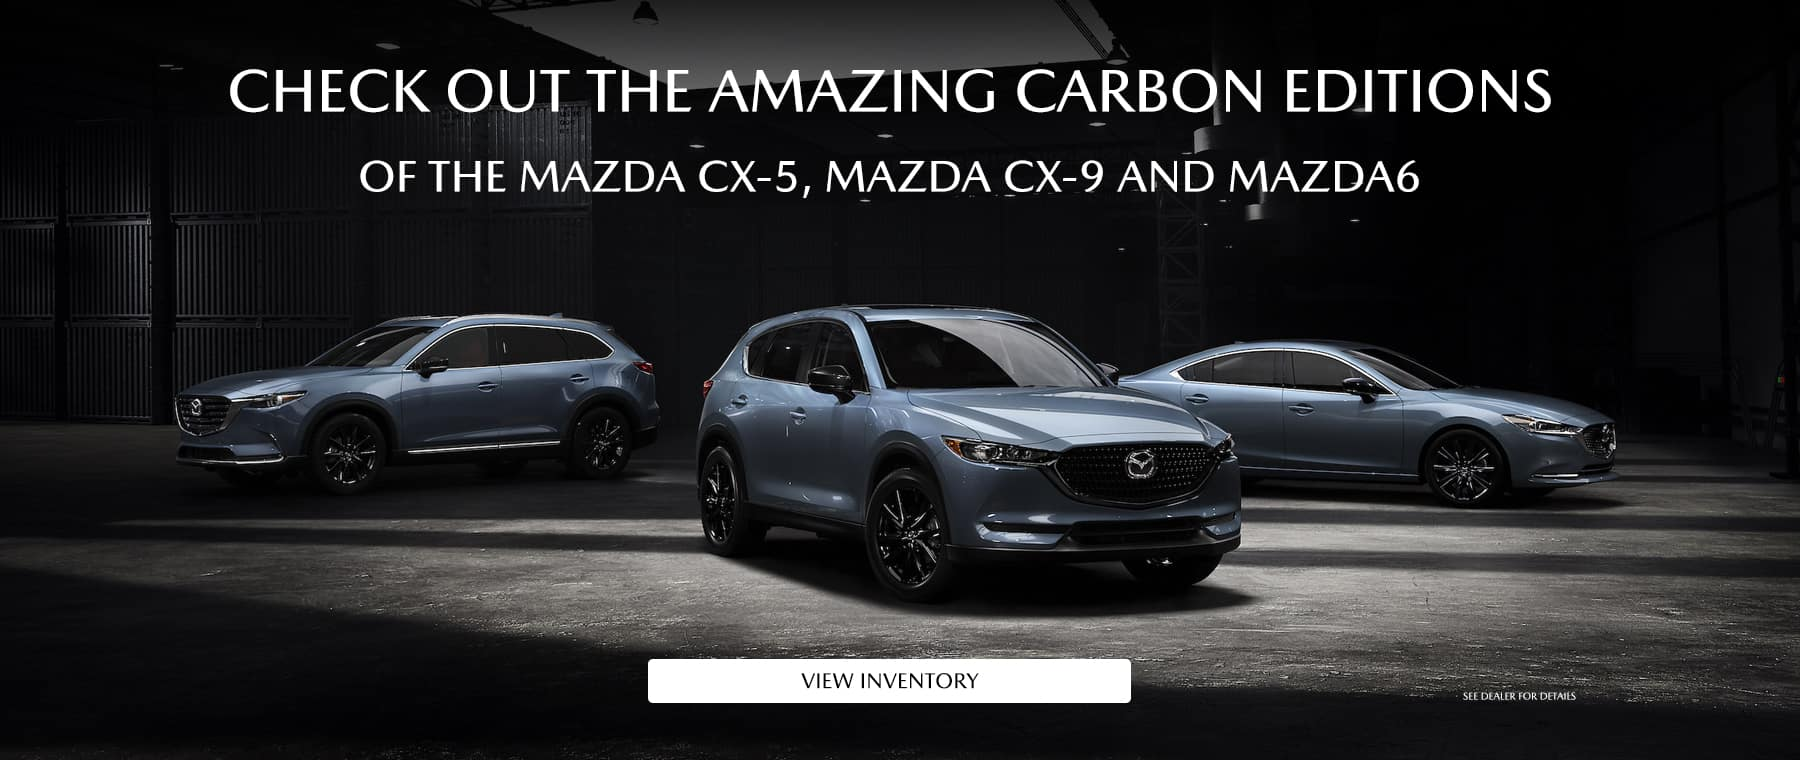 Carbon Editions